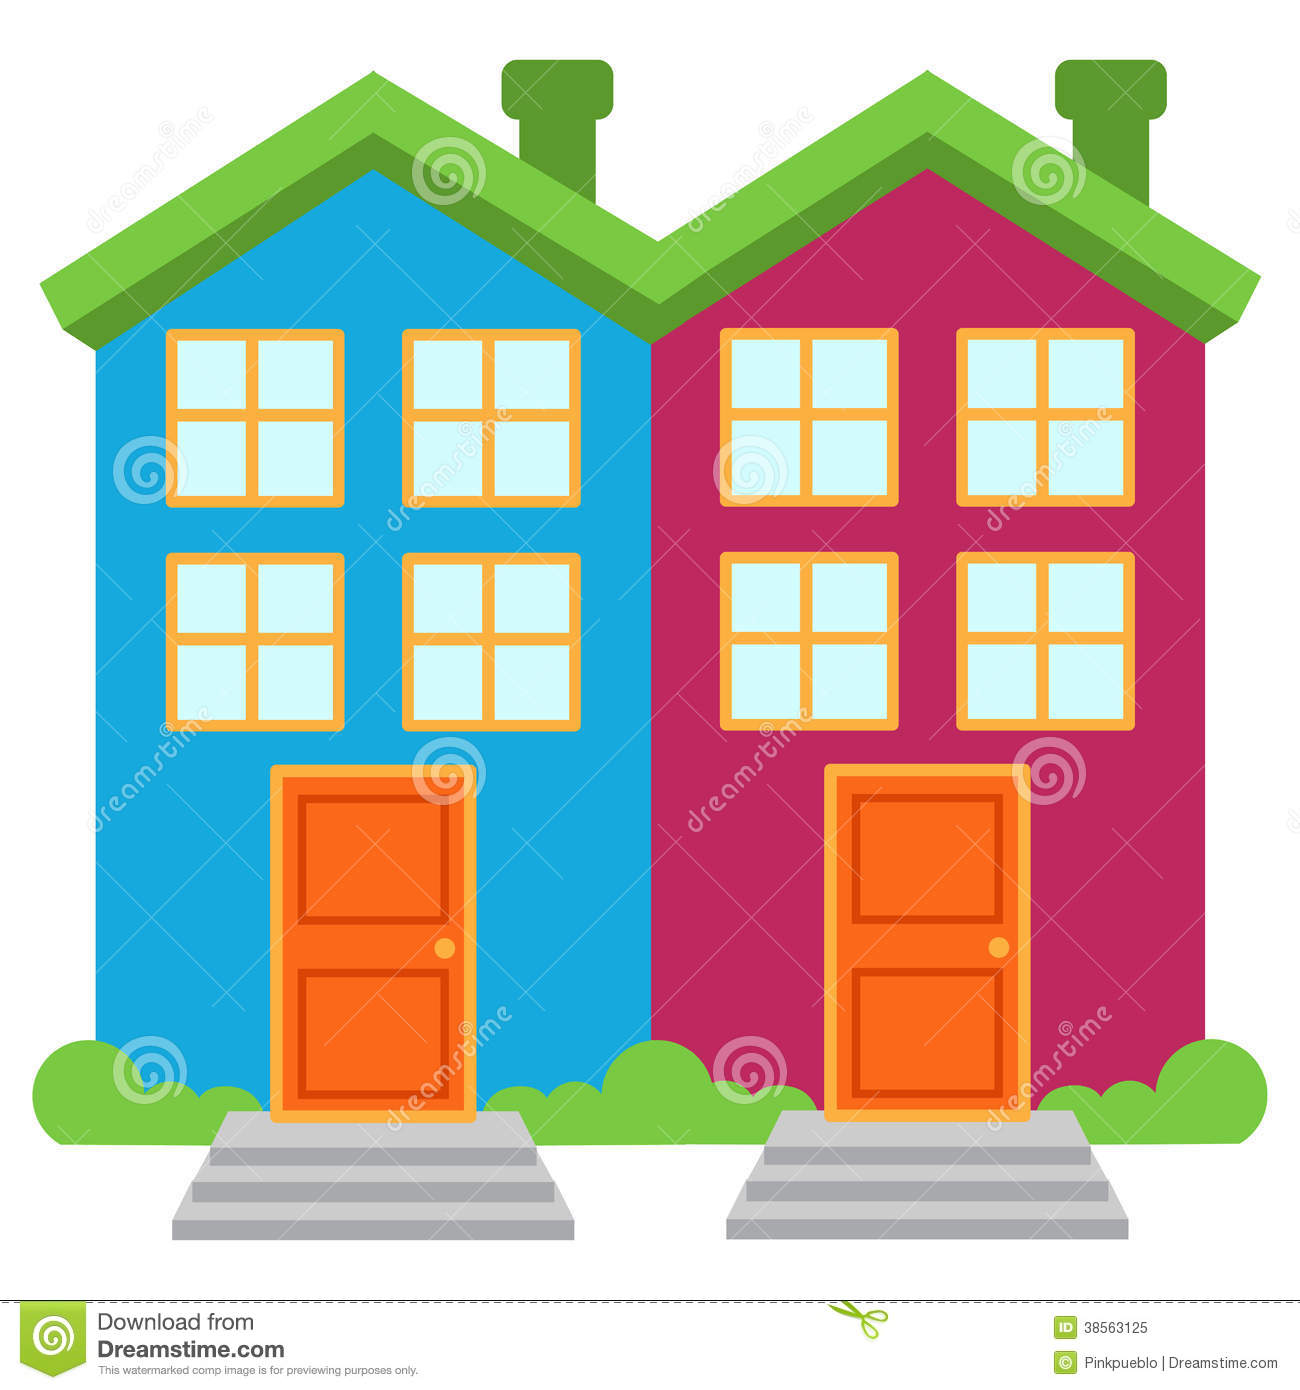 house side view clipart - photo #27